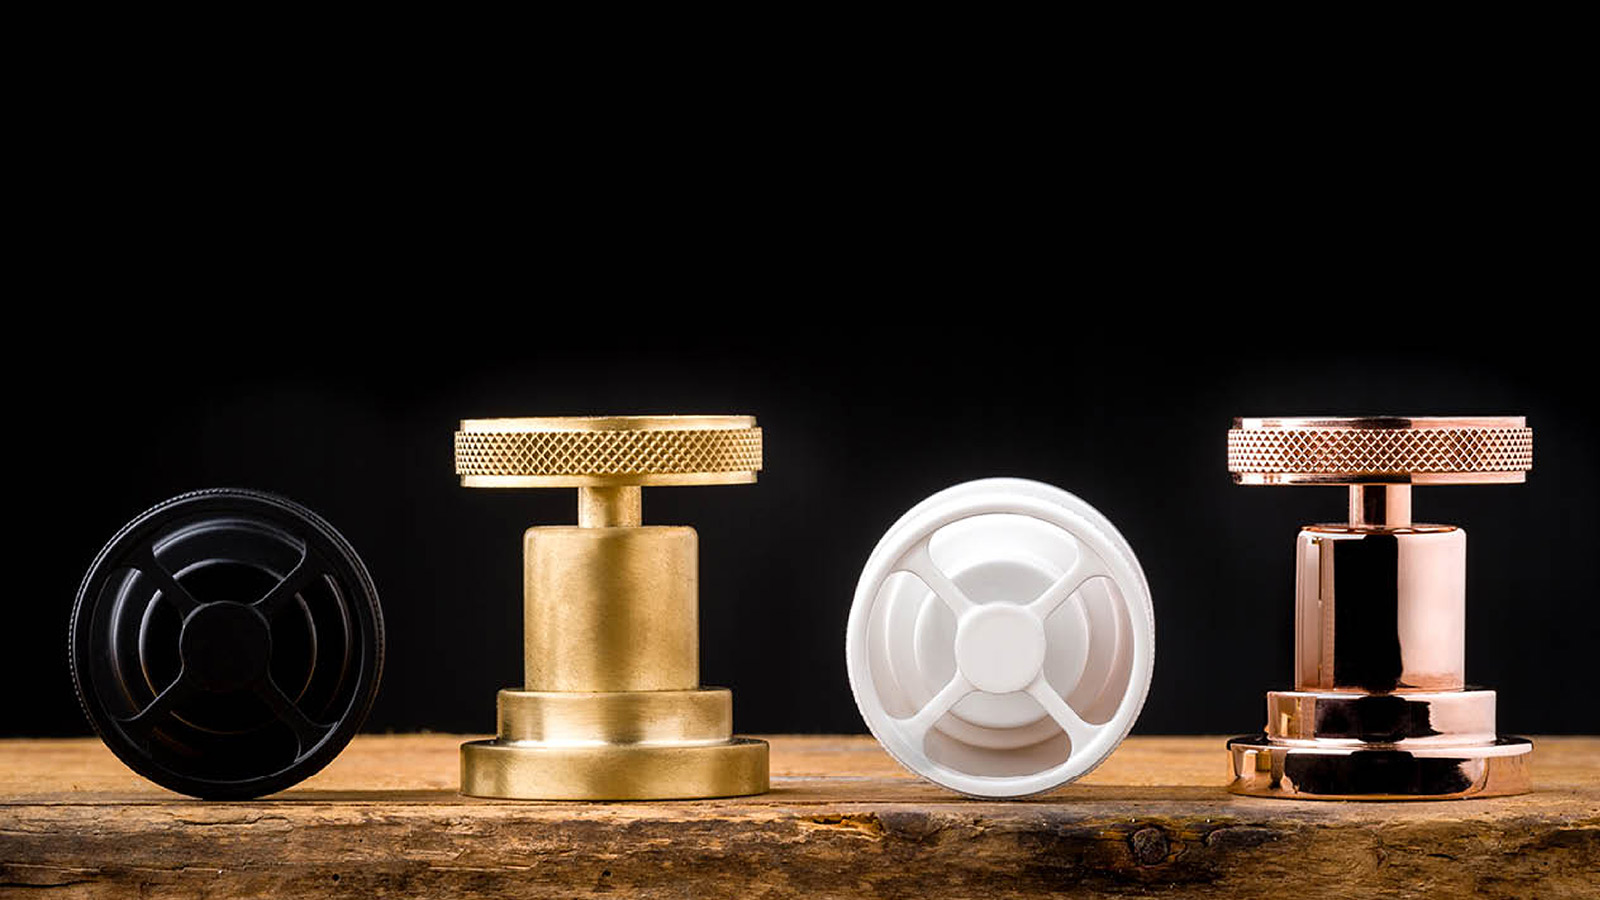 Nicolazzi - Luxury Taps made to last